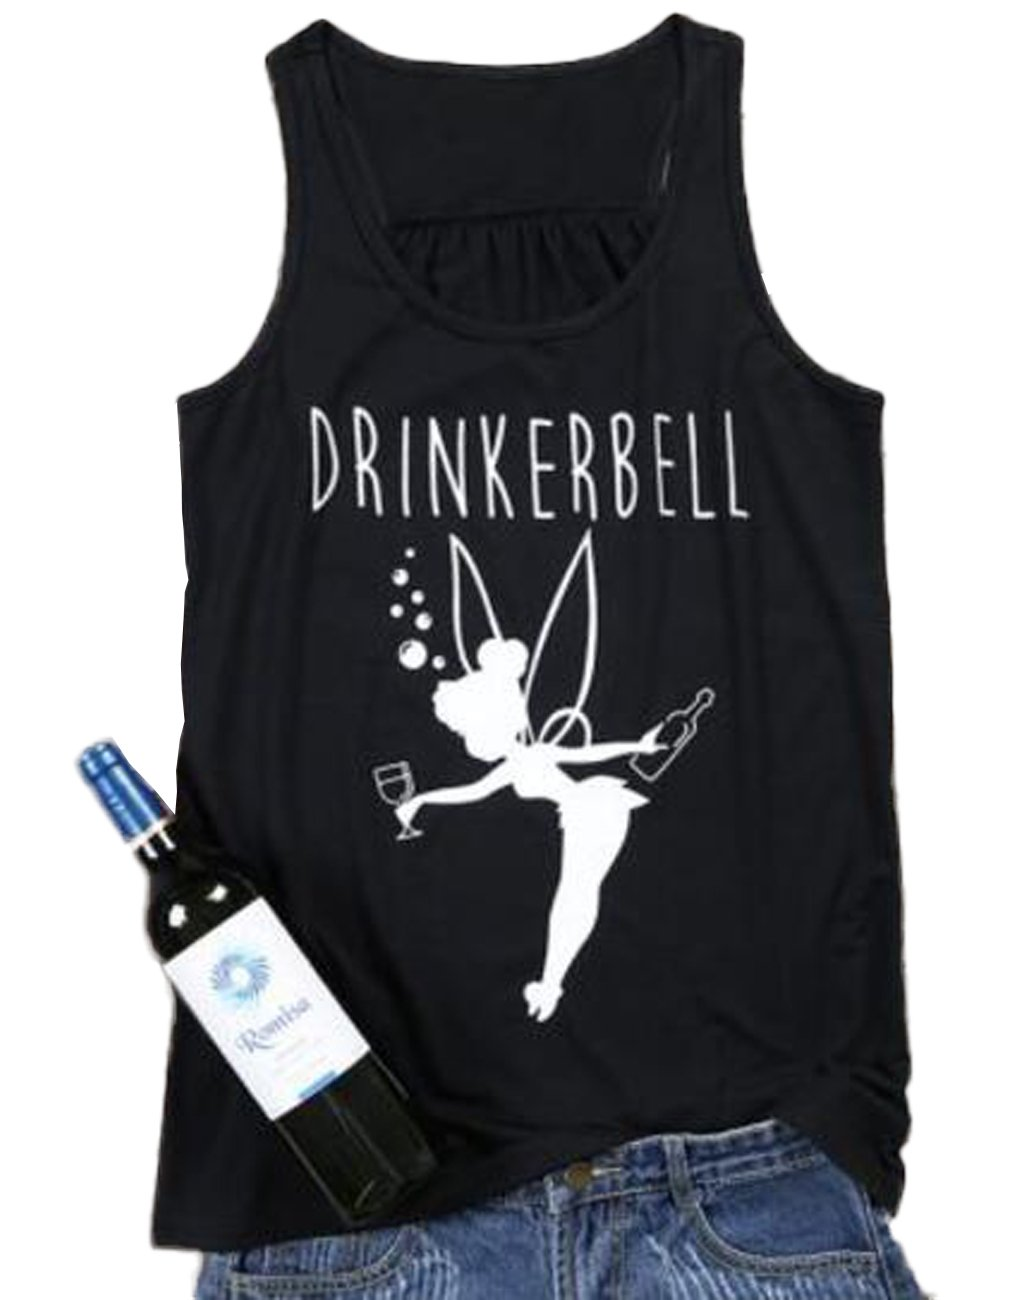 FAYALEQ Drinkerbell Fairy O-Neck Tank Top Women Casual Printed Sleeveless Funny T-Shirt Size M (Black)